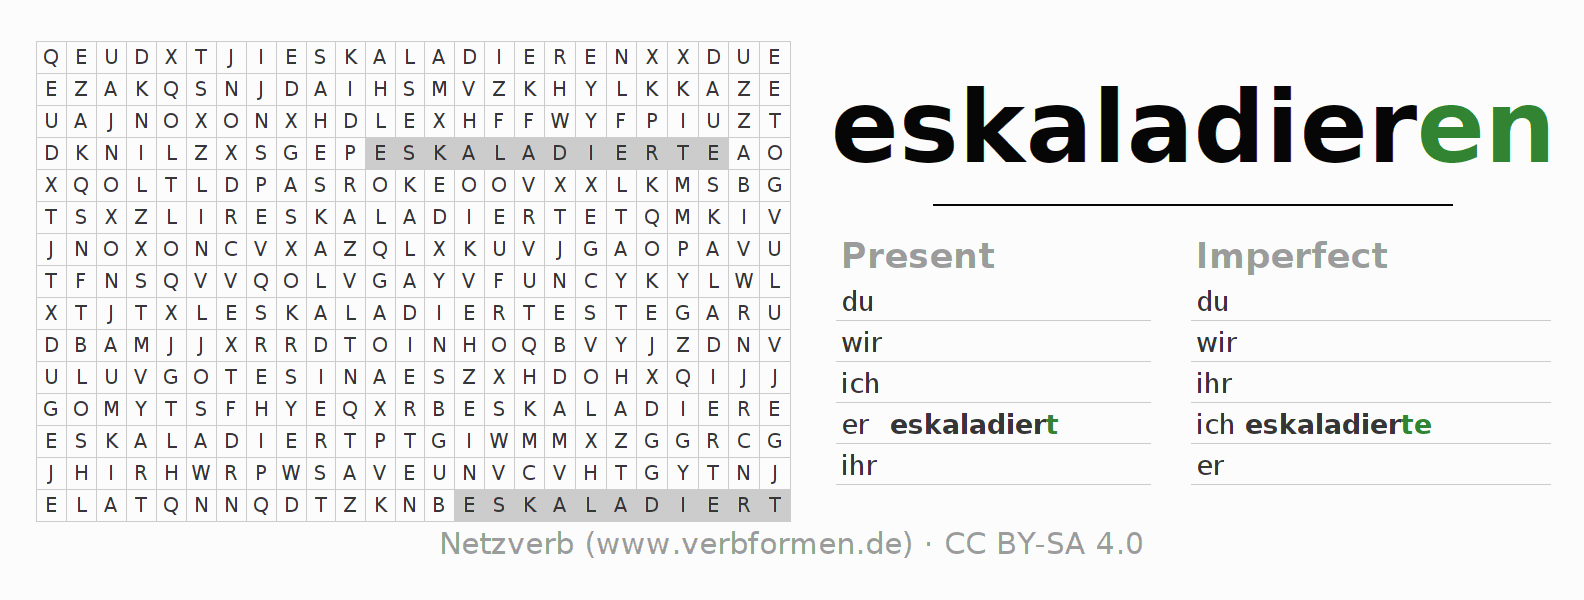 Word search puzzle for the conjugation of the verb eskaladieren